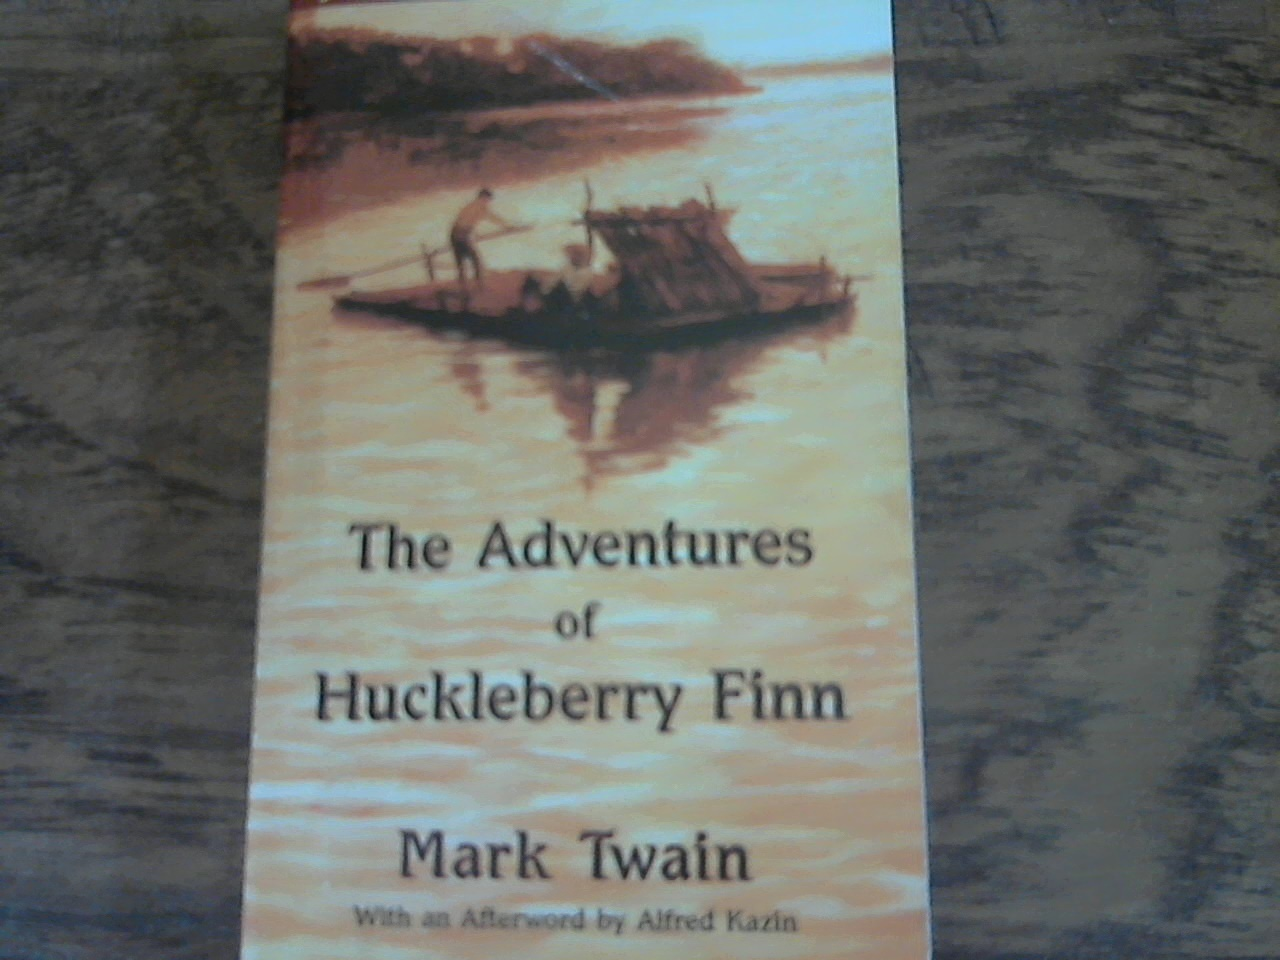 the adventures of huckleberry finn by mark twain realism not racism